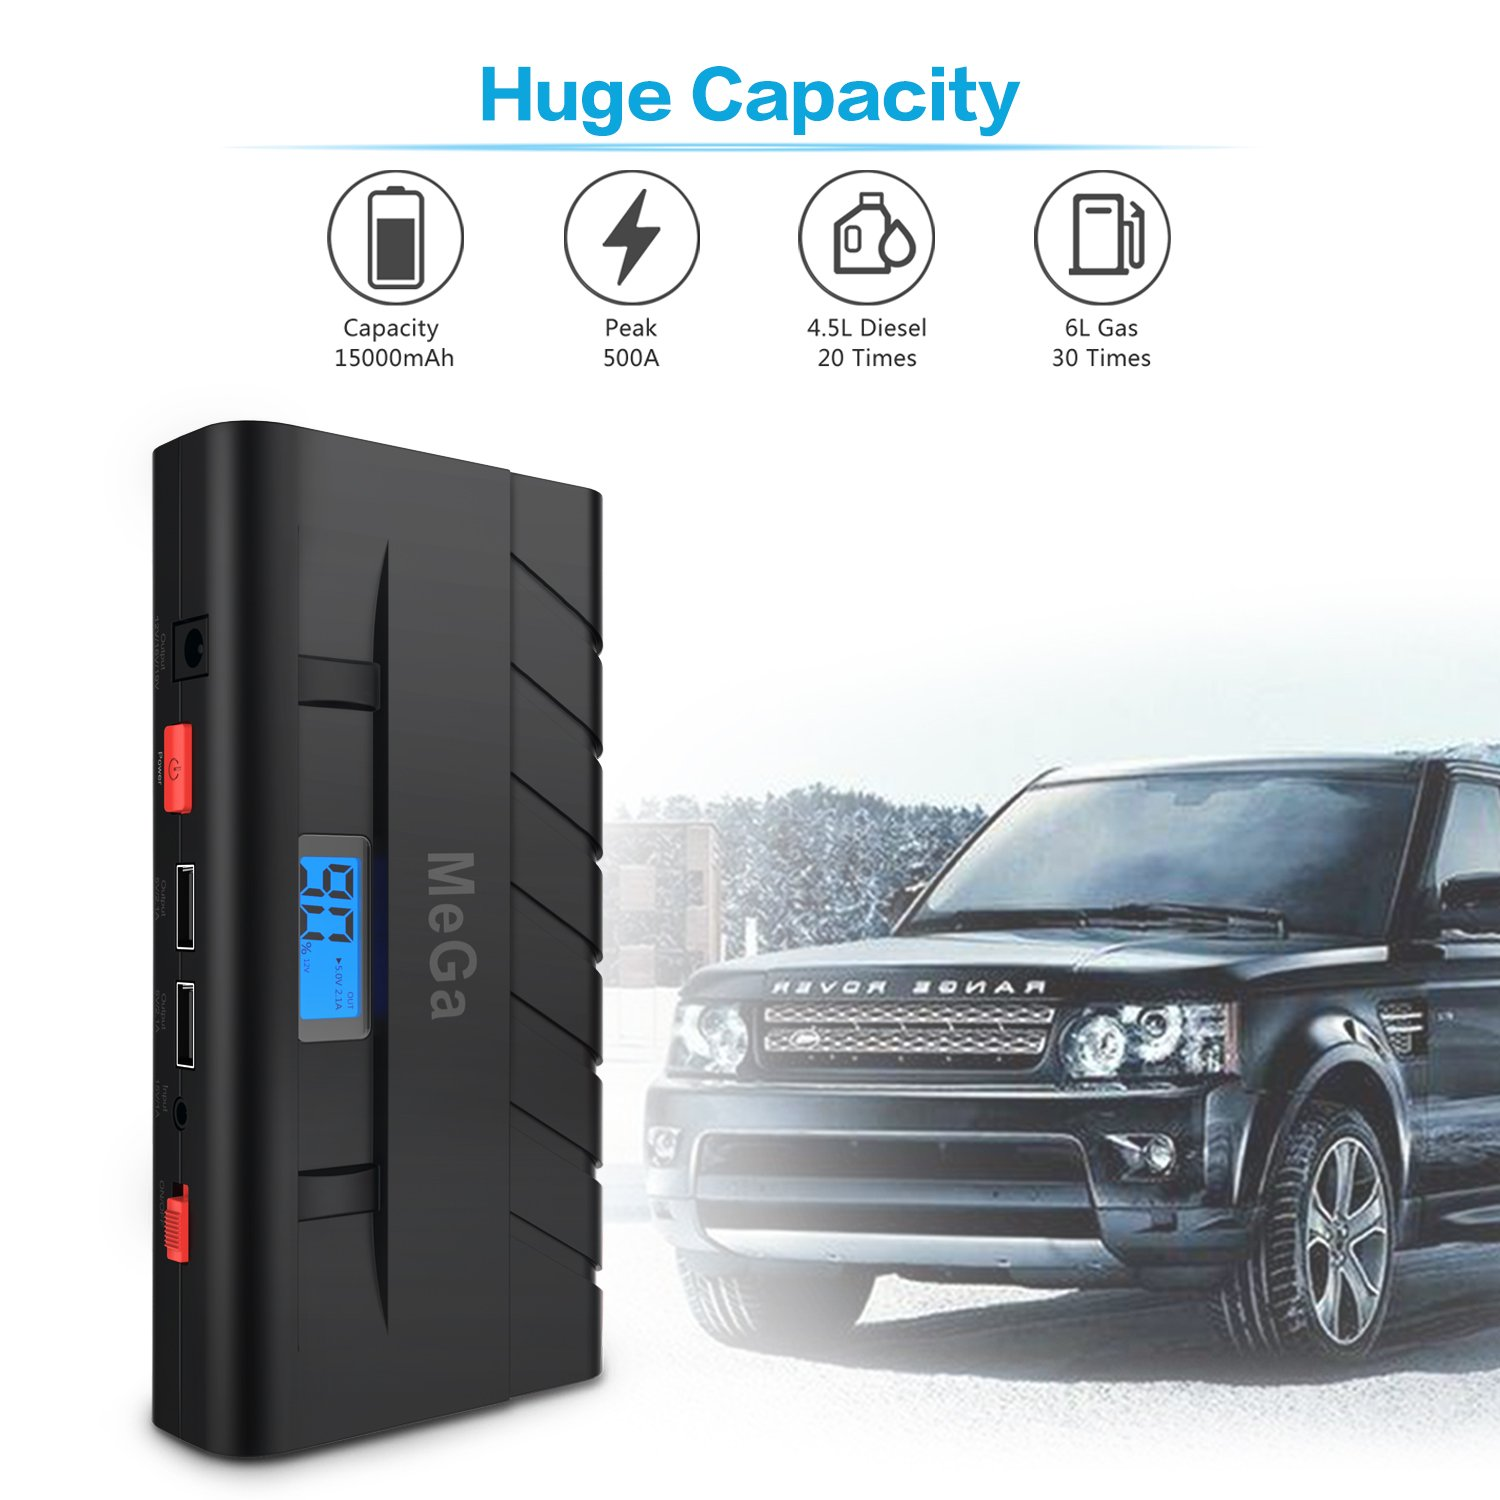 15000mAh Car Jump Starter (up to 5L Gas, 3.5L Diesel Engine), MeGa Portable Power Bank Auto Battery Booster Phone Charger with Dual USB Ports and Flashlight (Black) by Mega Brands (Image #2)